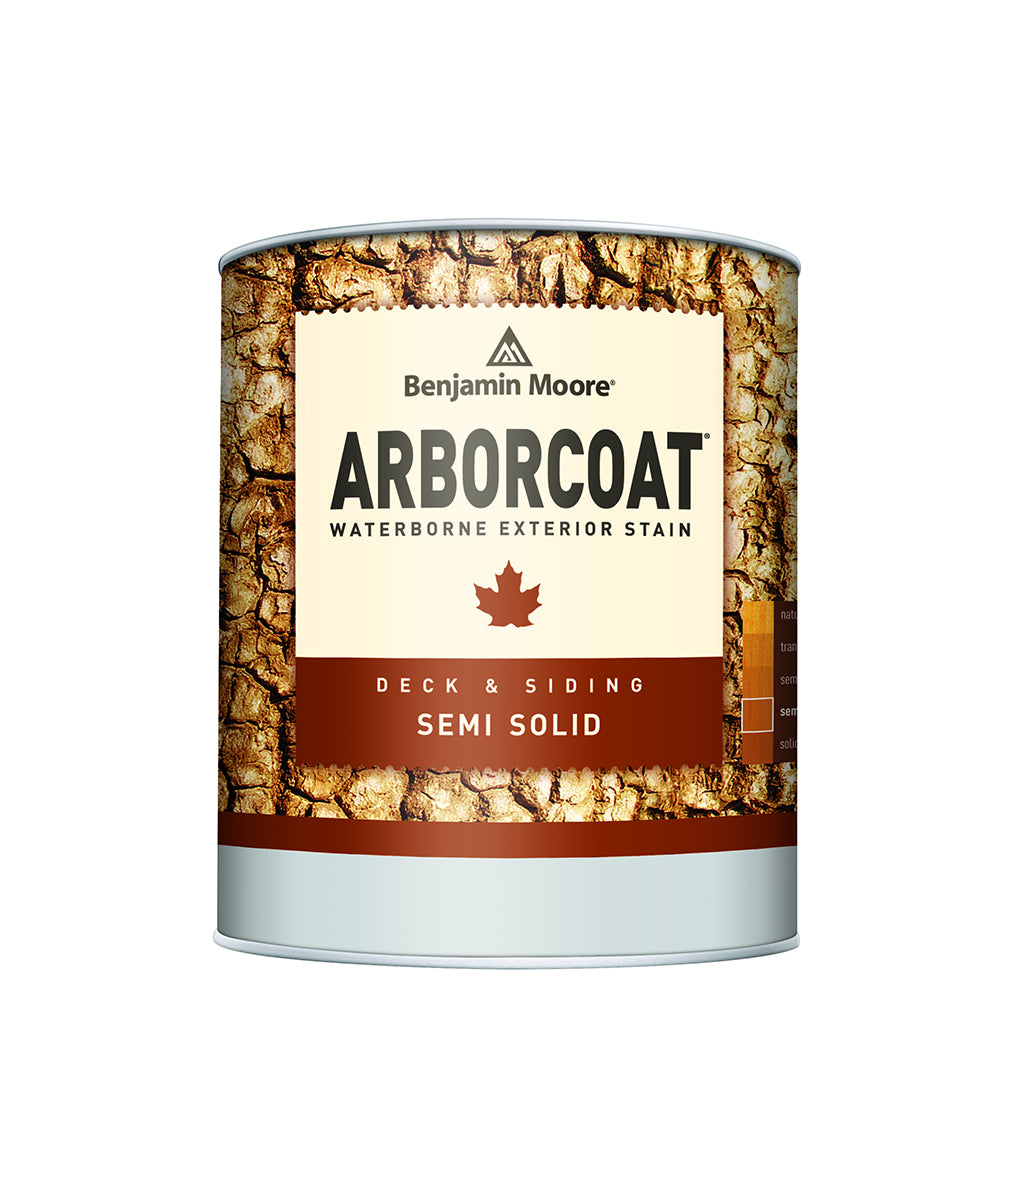 Arborcoat Semi-Solid Pint, available at Catalina Paints in CA.